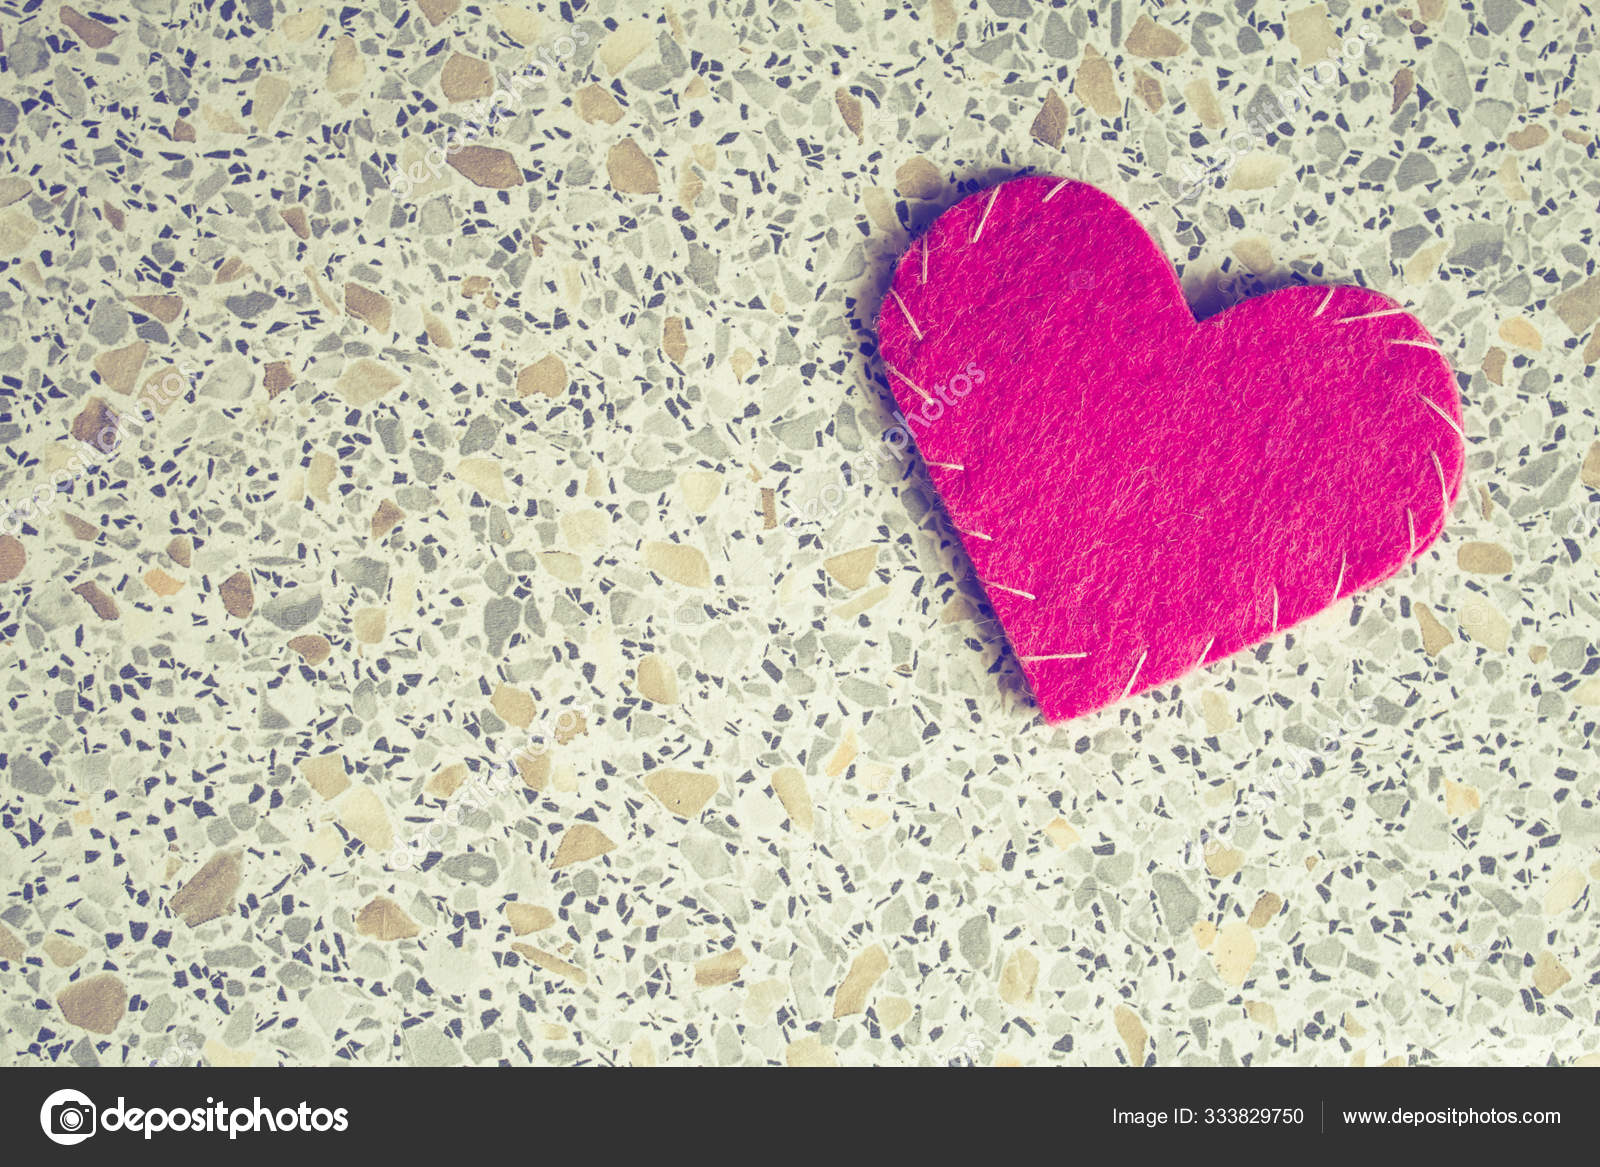 Red Felt Heart Stone Marble Background Template Valentine Day Romantic Stock Photo C Shafran13 333829750